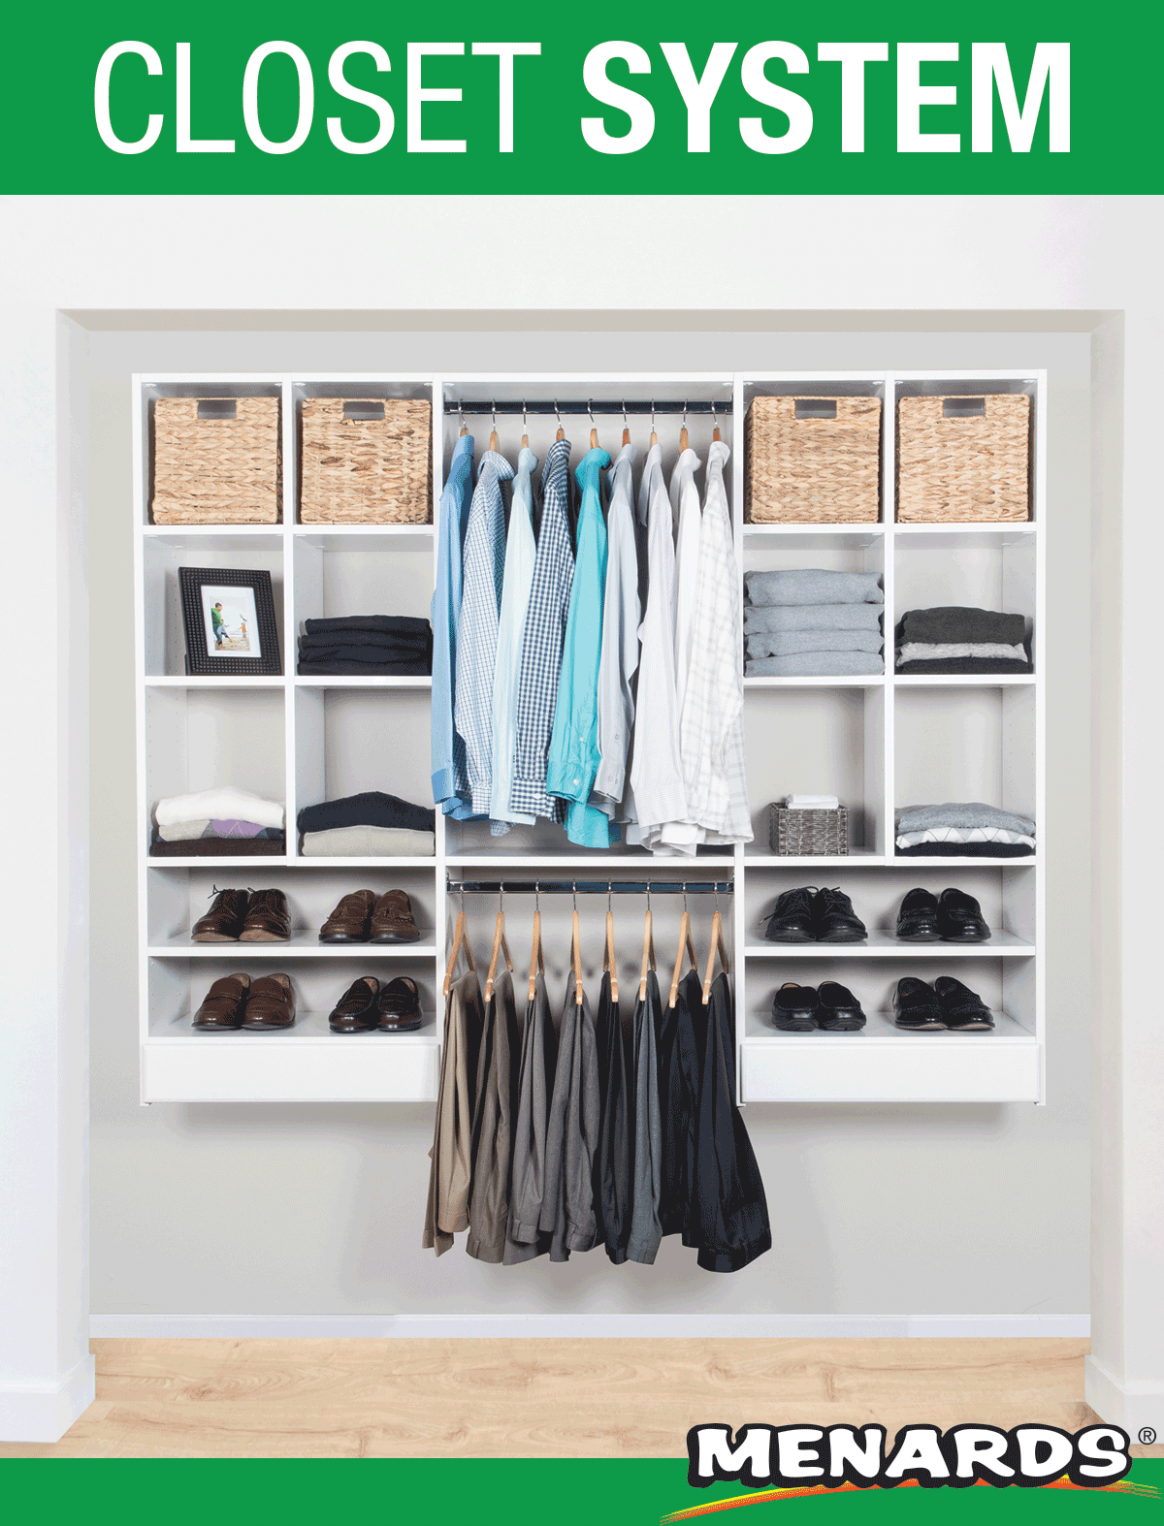 11 Best Storage and Organization images in 11 | Storage and ..